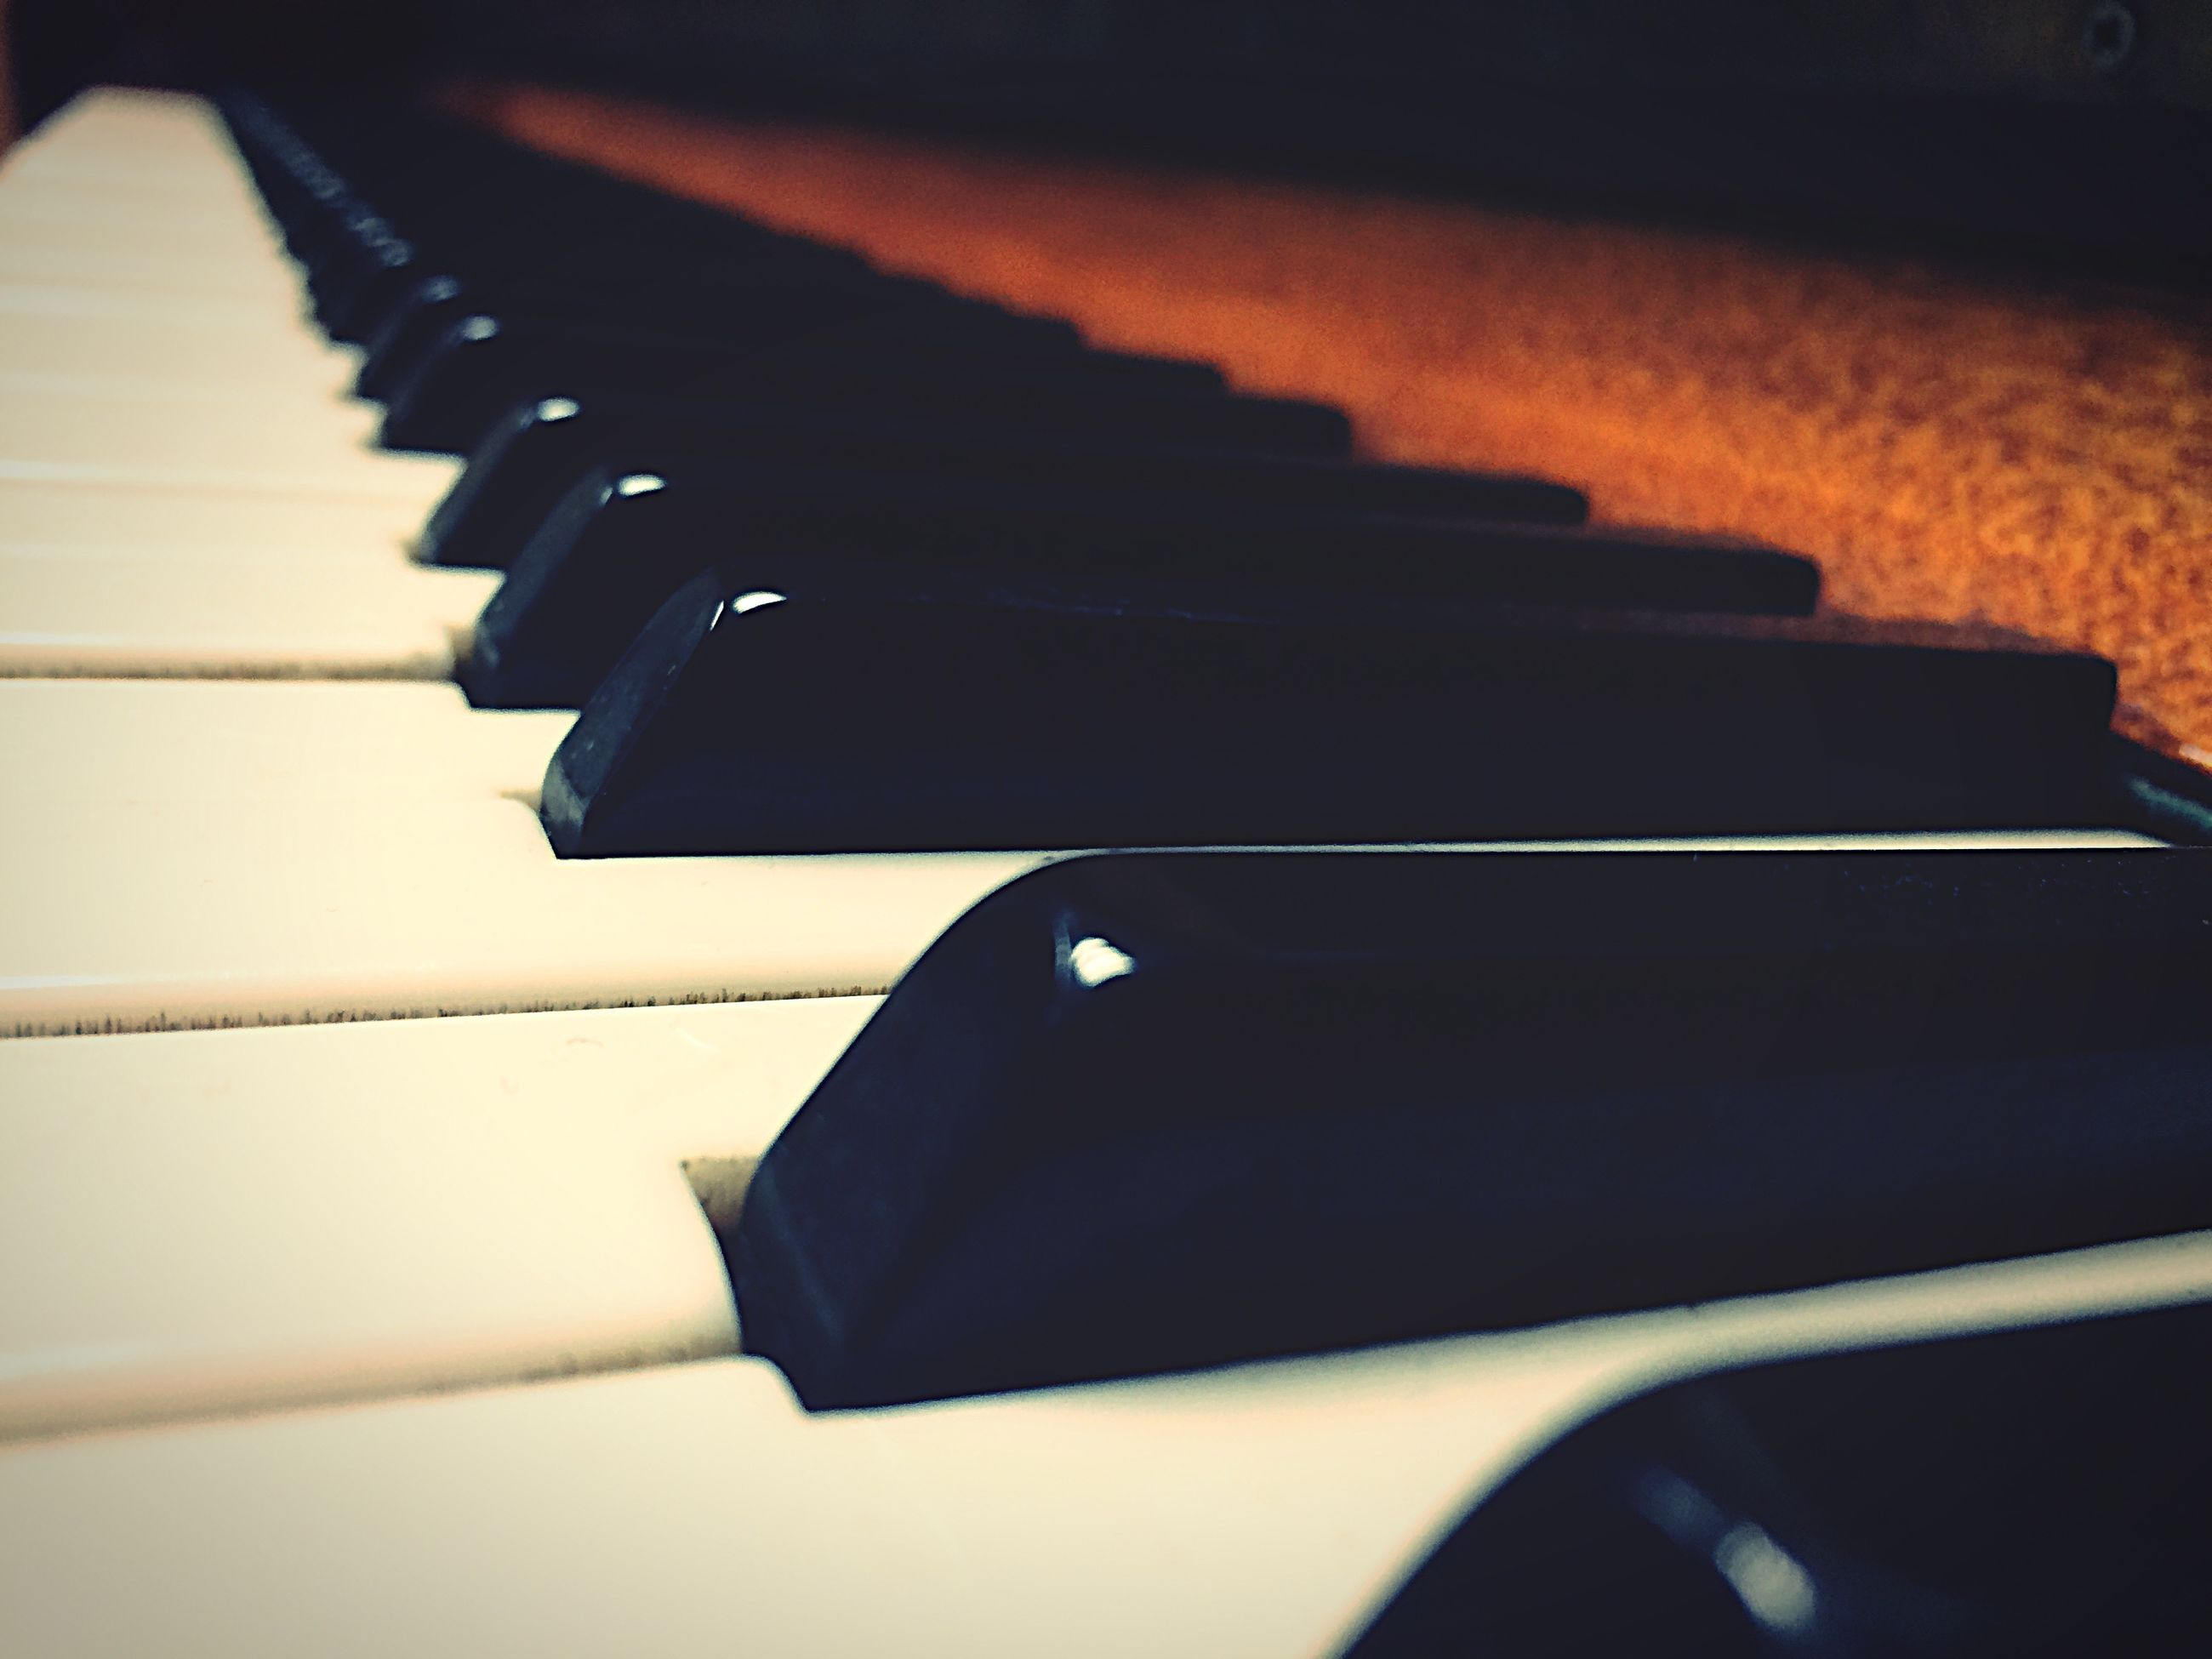 indoors, music, close-up, arts culture and entertainment, piano key, musical instrument, piano, still life, musical equipment, selective focus, no people, part of, book, focus on foreground, black color, technology, high angle view, table, single object, in a row